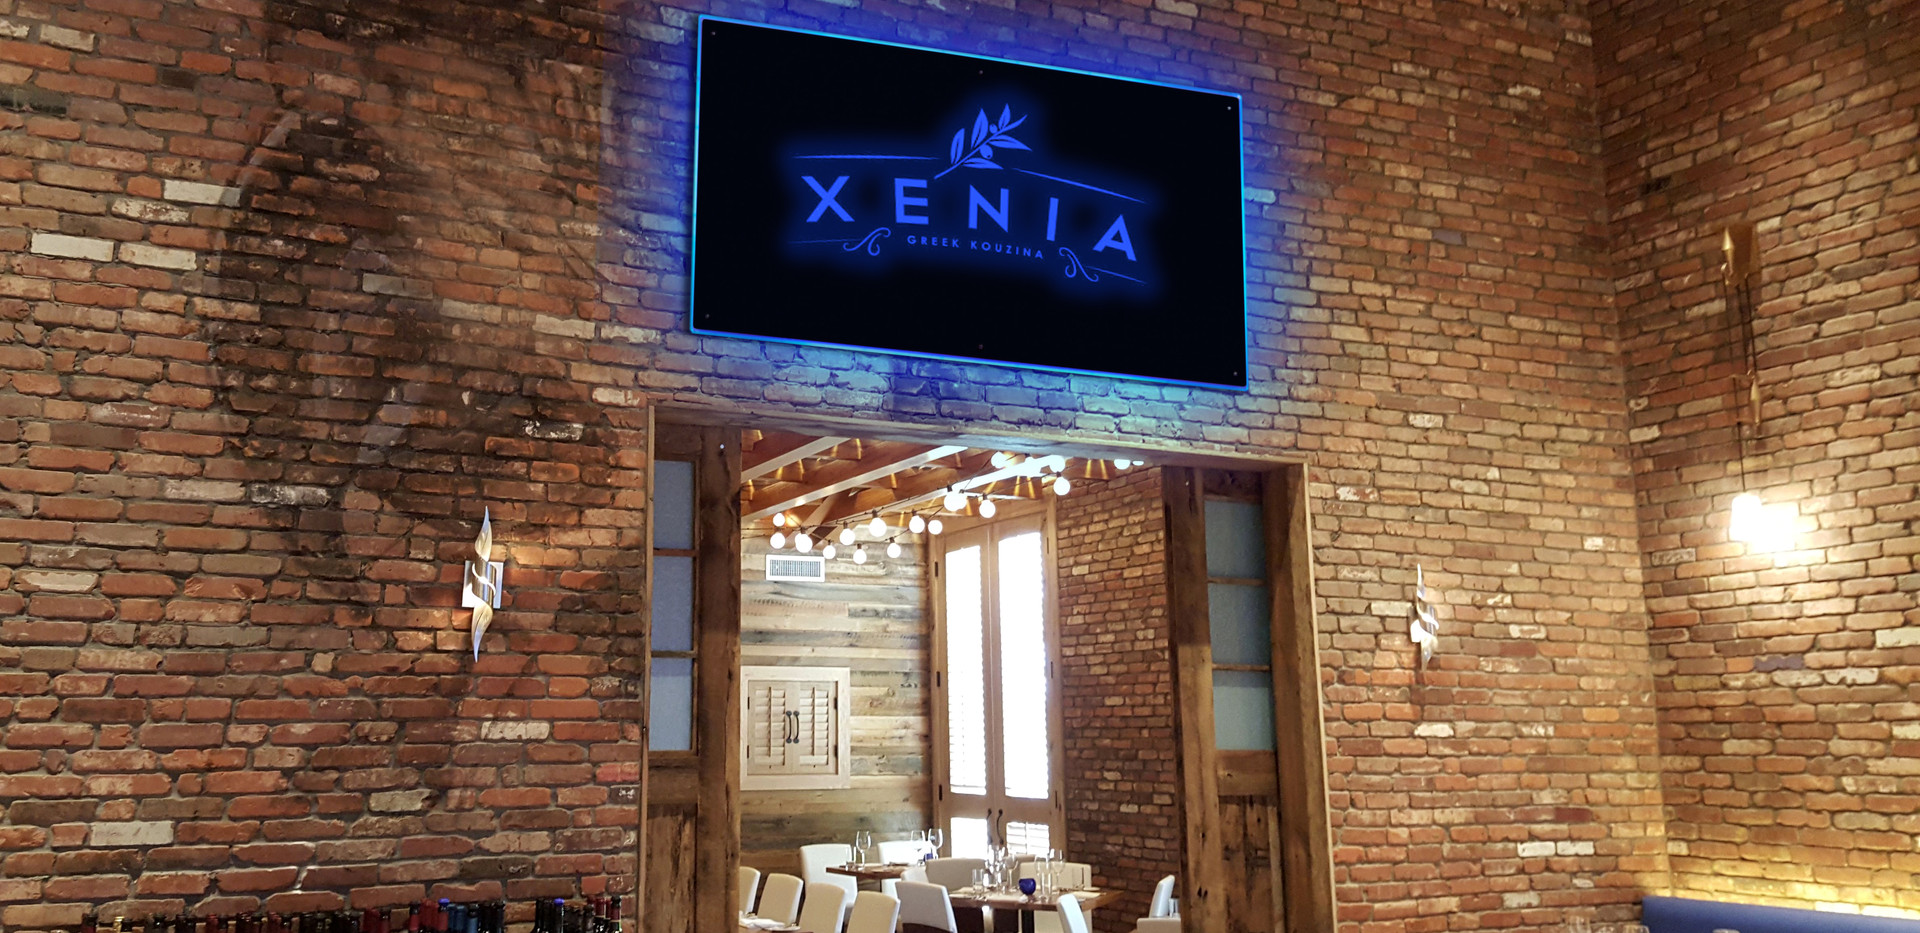 Restaurant sign-XENIA logo.jpg